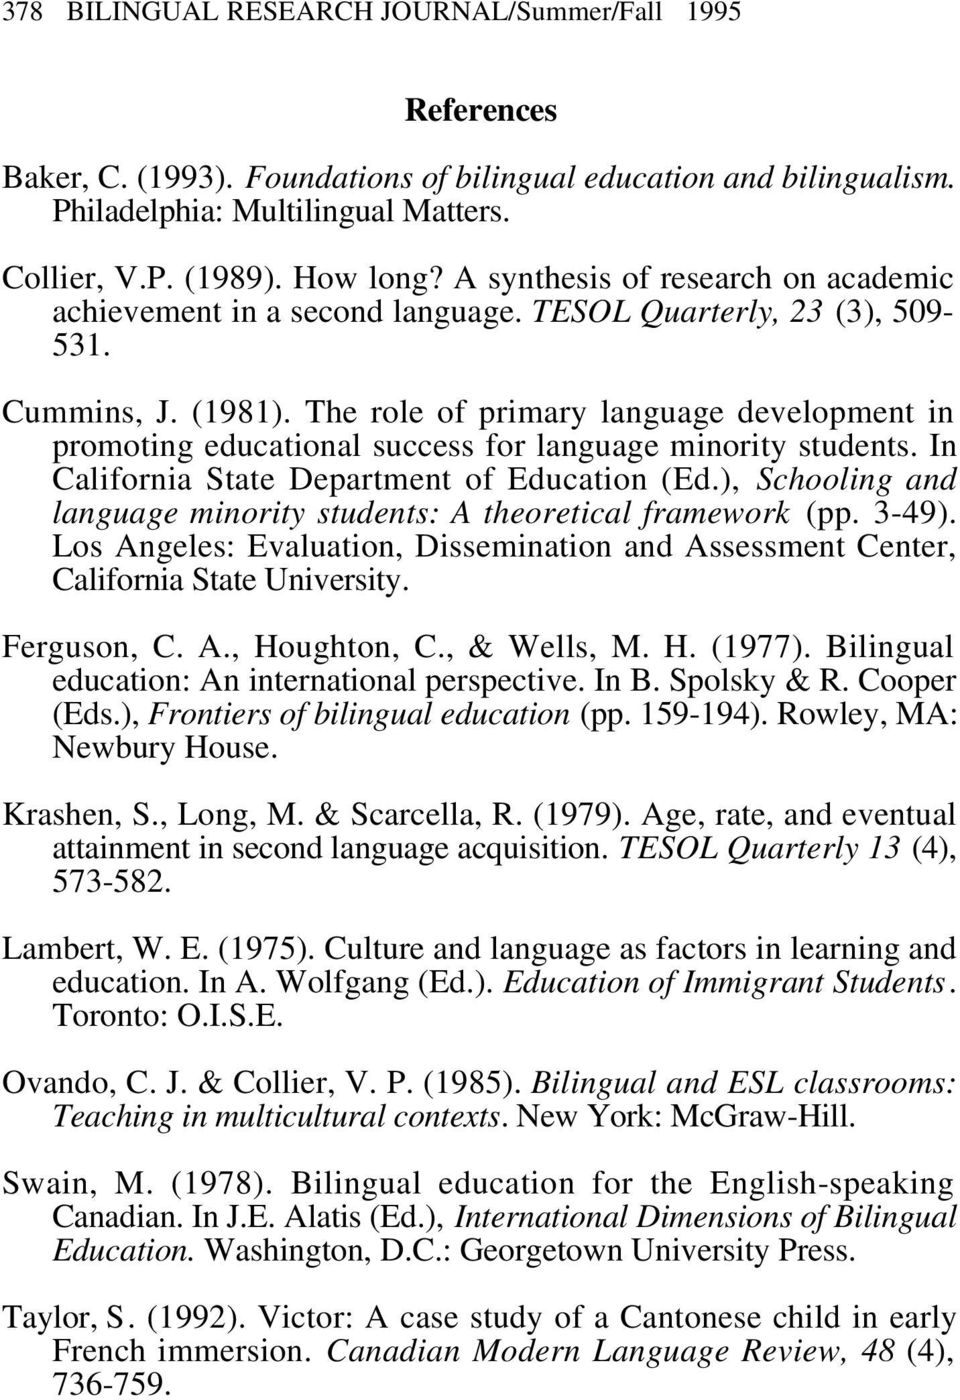 The role of primary language development in promoting educational success for language minority students. In California State Department of Education (Ed.